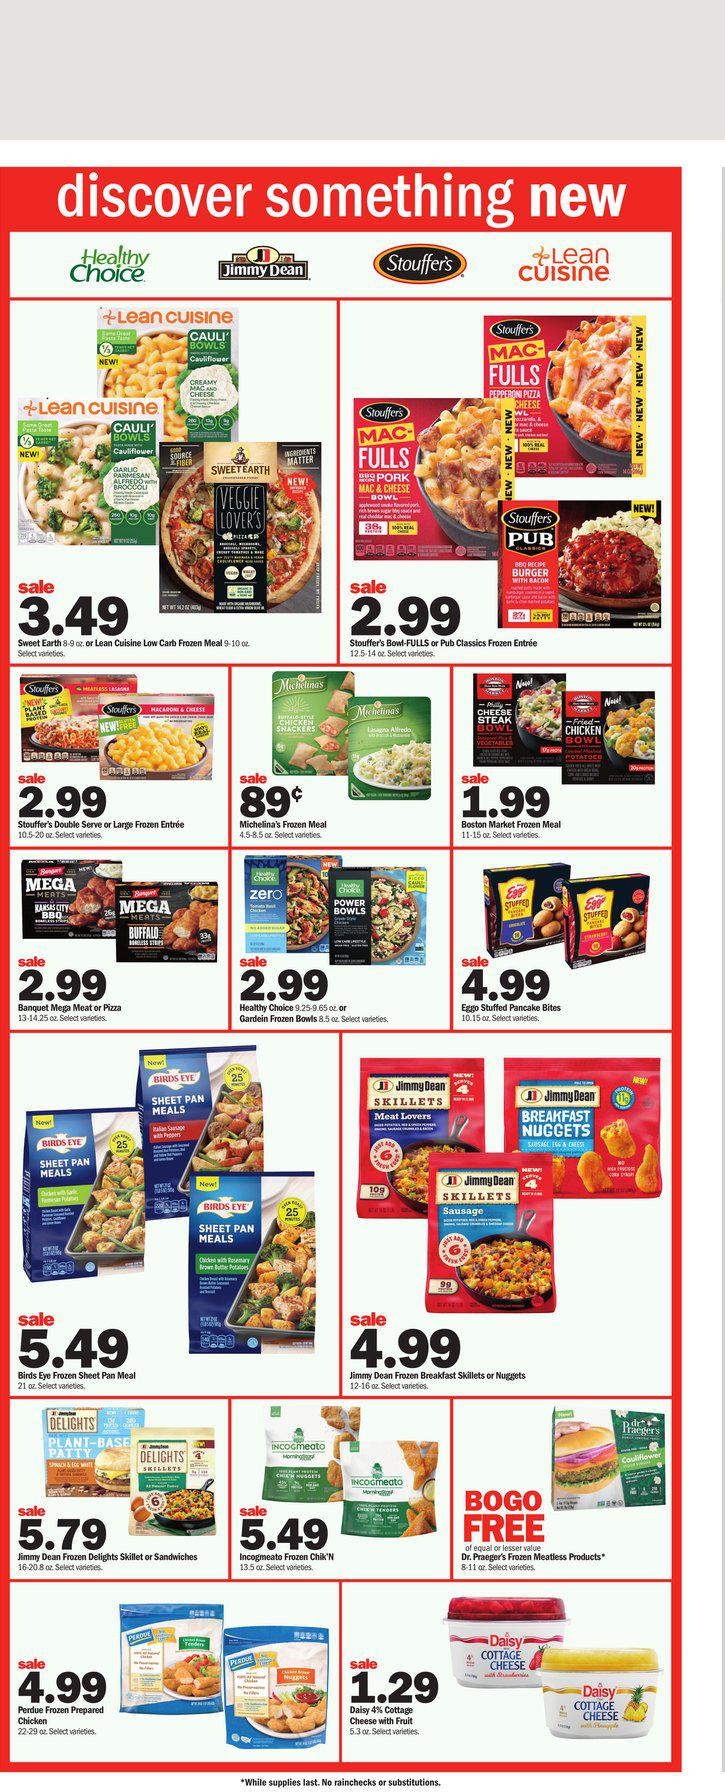 06.06.2021 Meijer ad 7. page